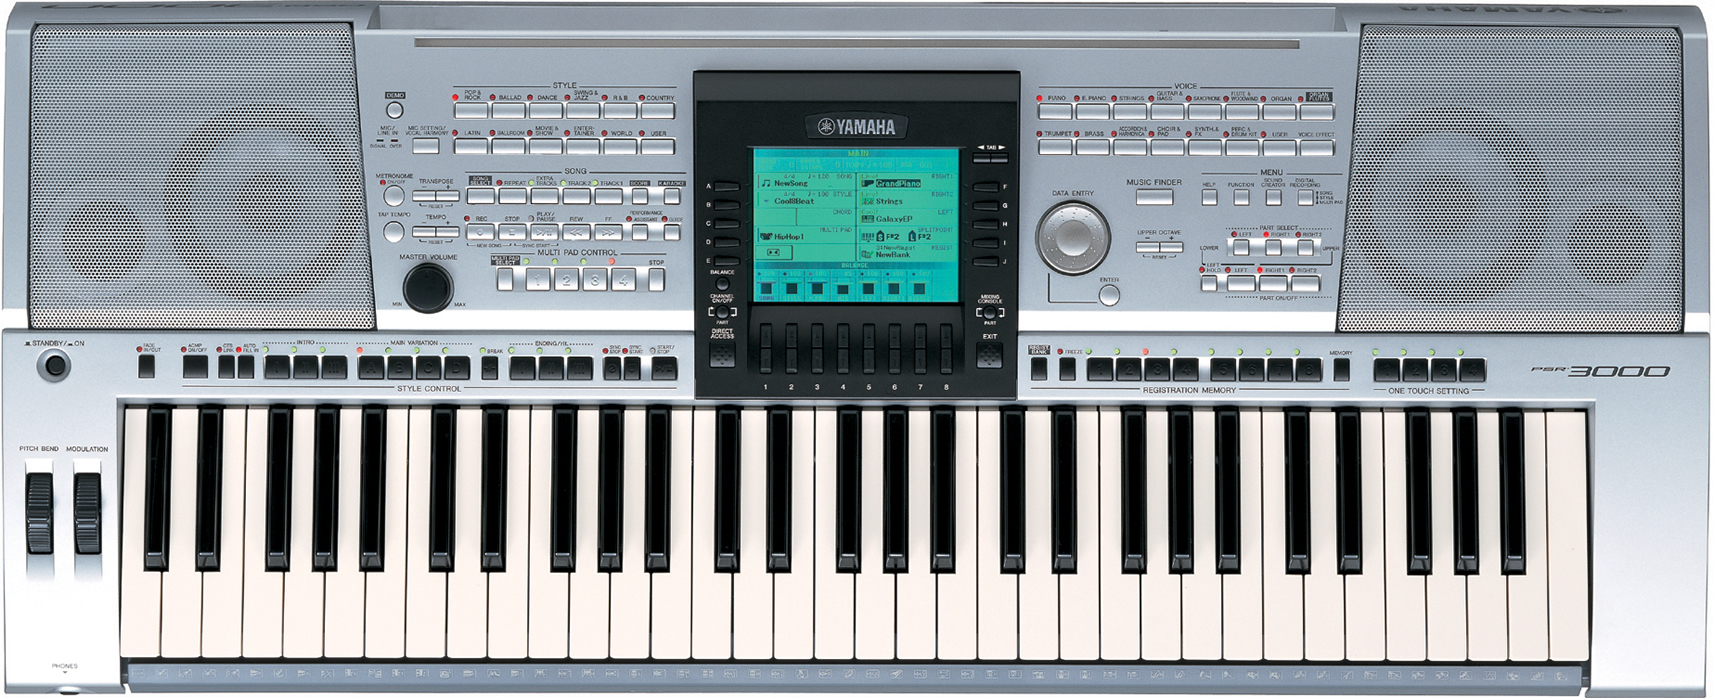 yamaha psr 295 manual pdf